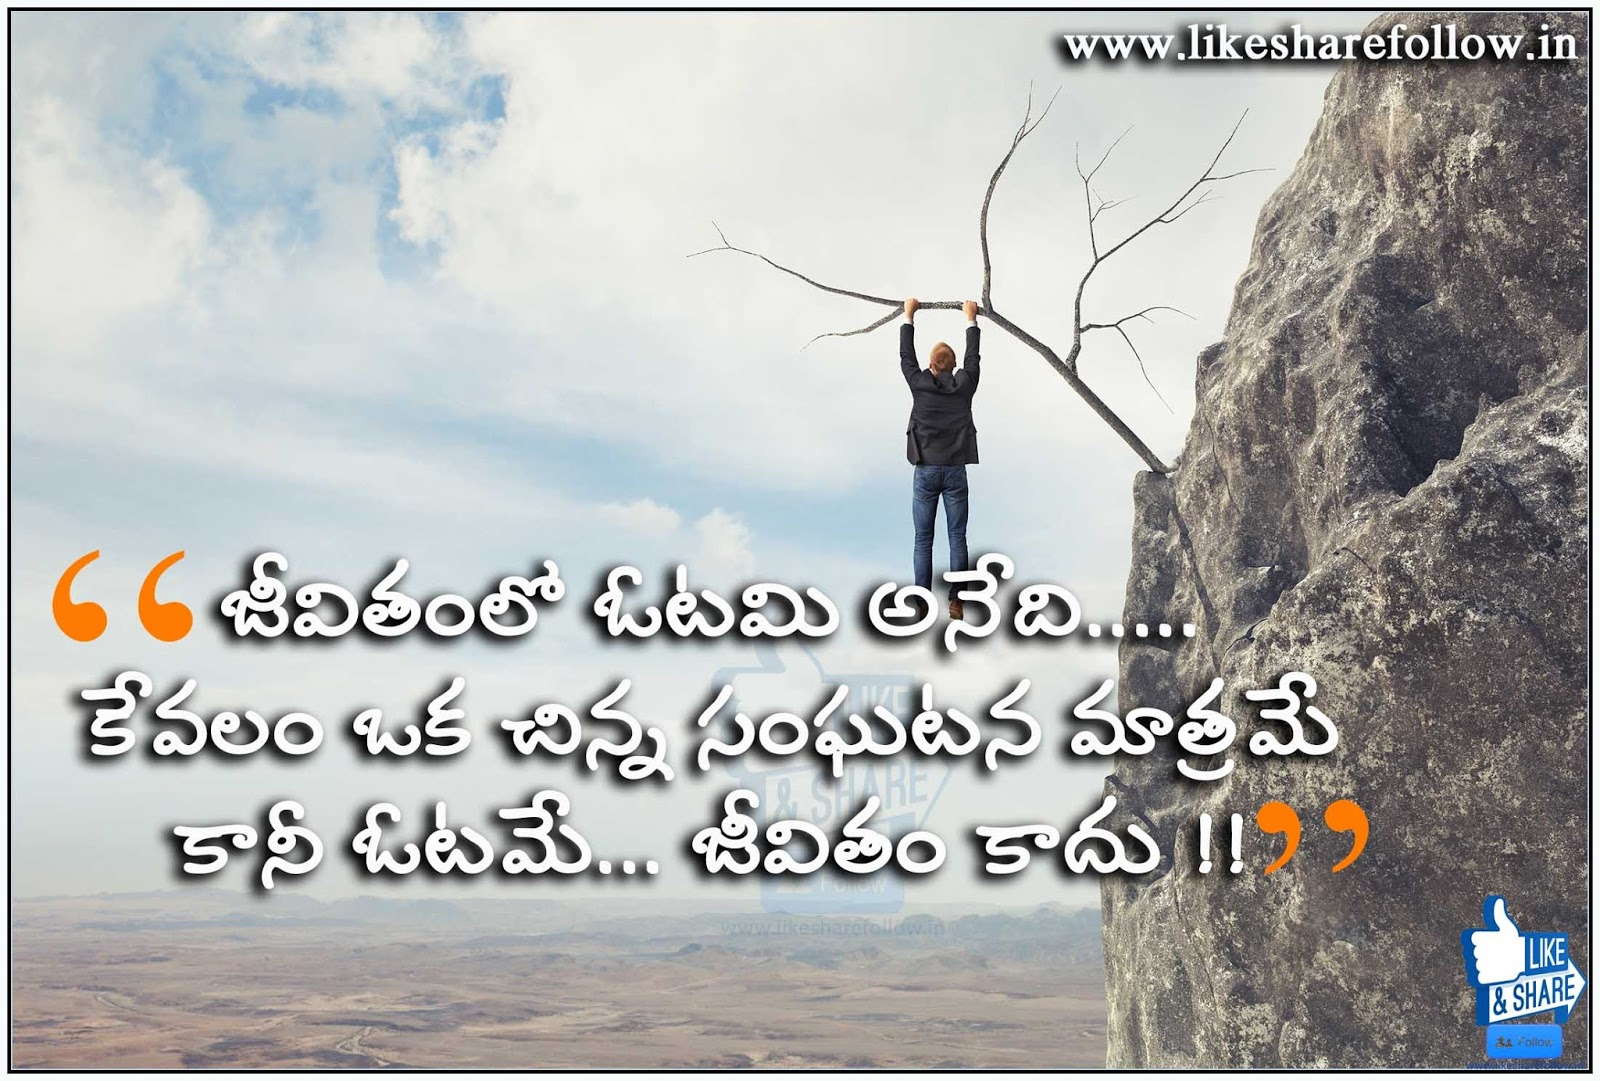 Good Life Quotes Good Night Telugu Life Quotes With Nice Messages  Like Share Follow